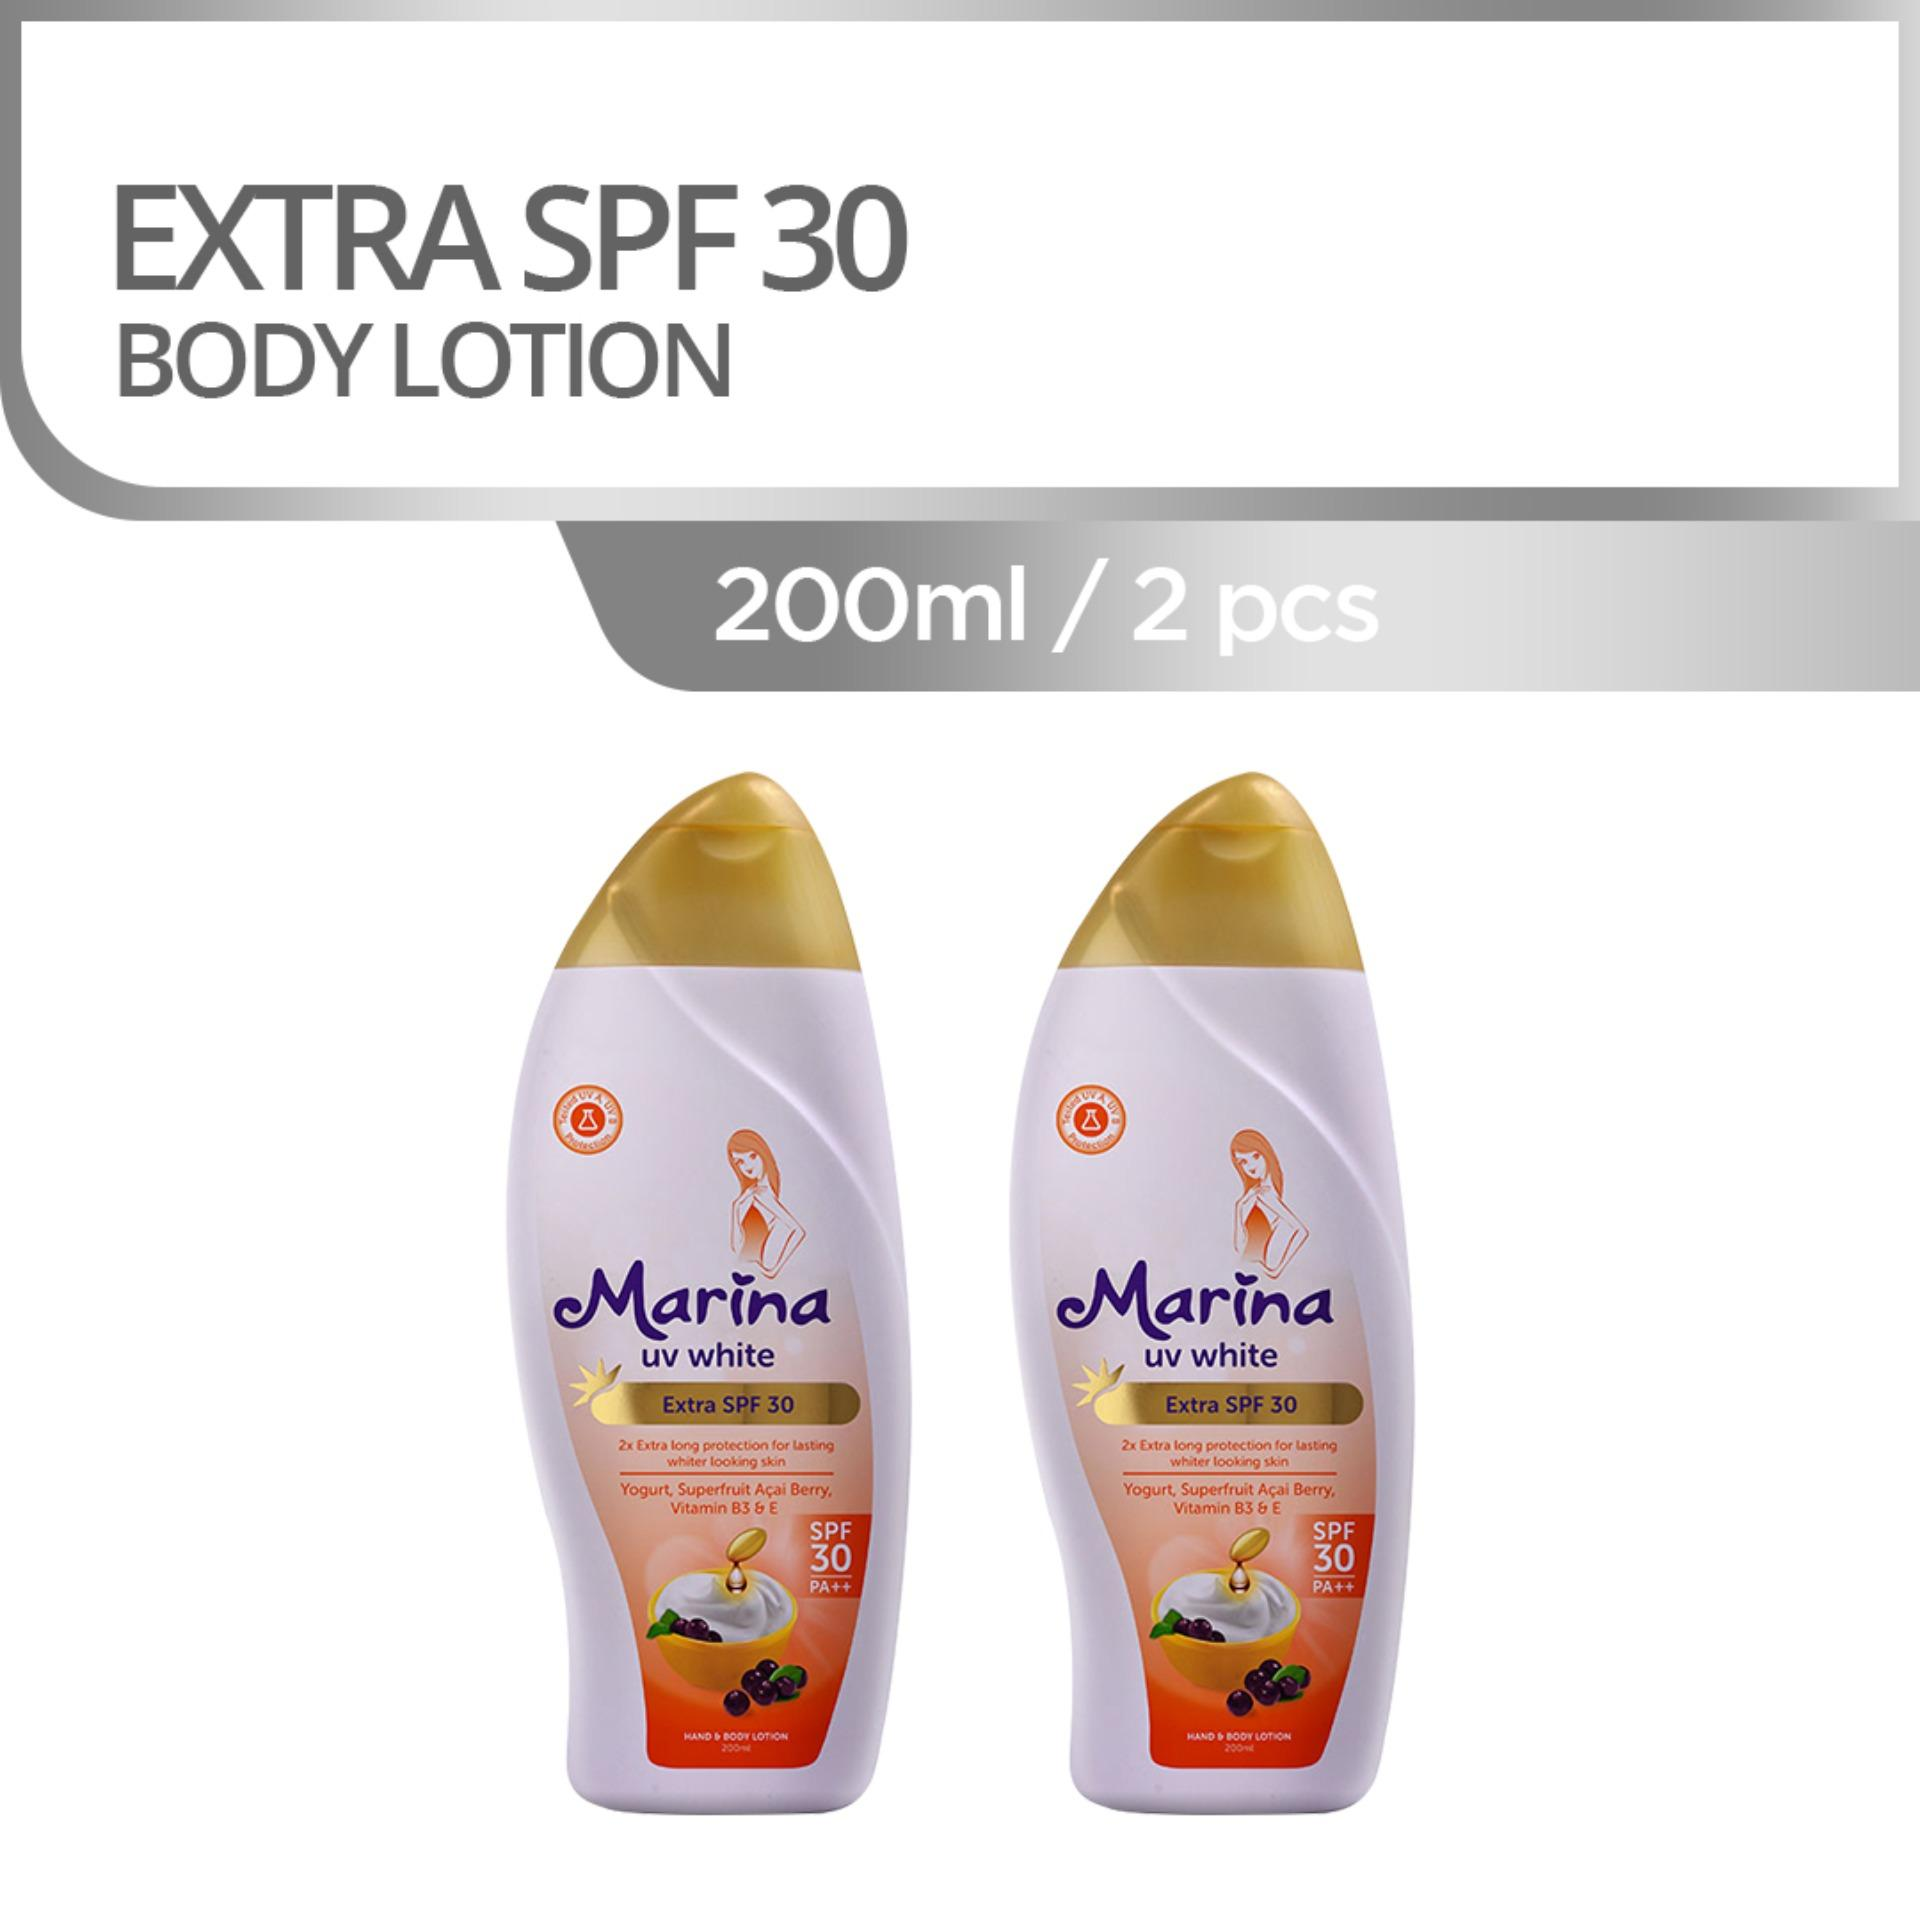 Marina UV White Extra SPF30 Hand and Body Lotion [200 mL/2 pcs]